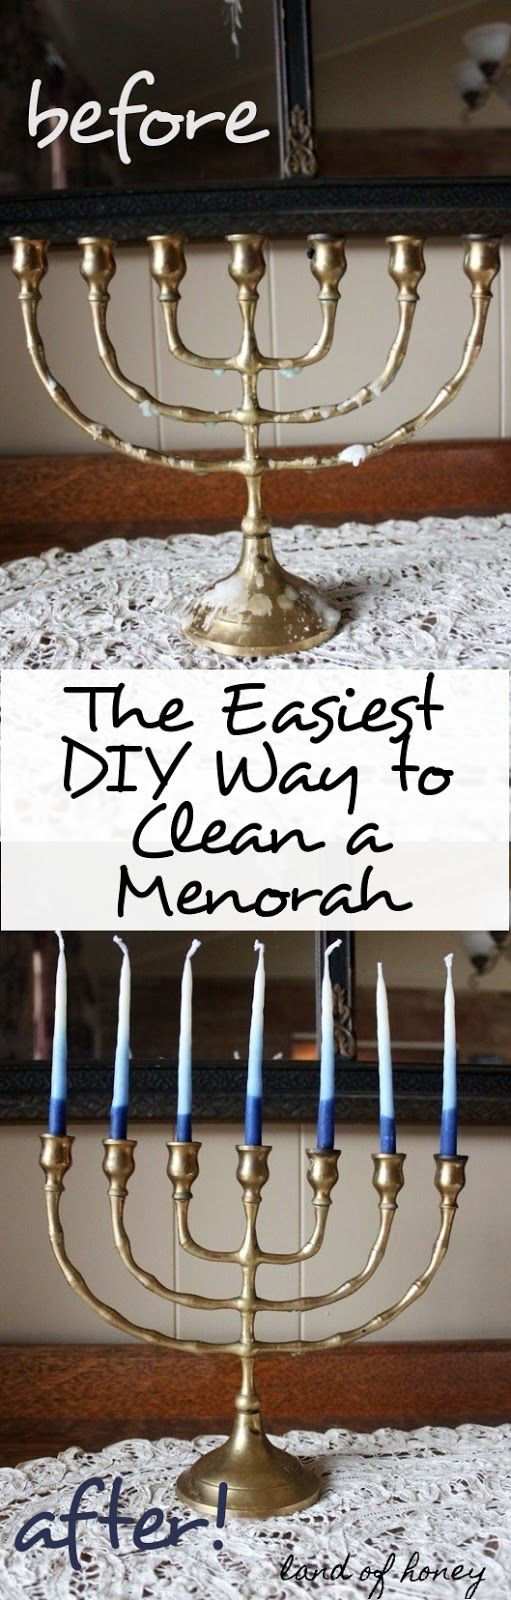 Super simple way to clean your menorah! | Land of Honey